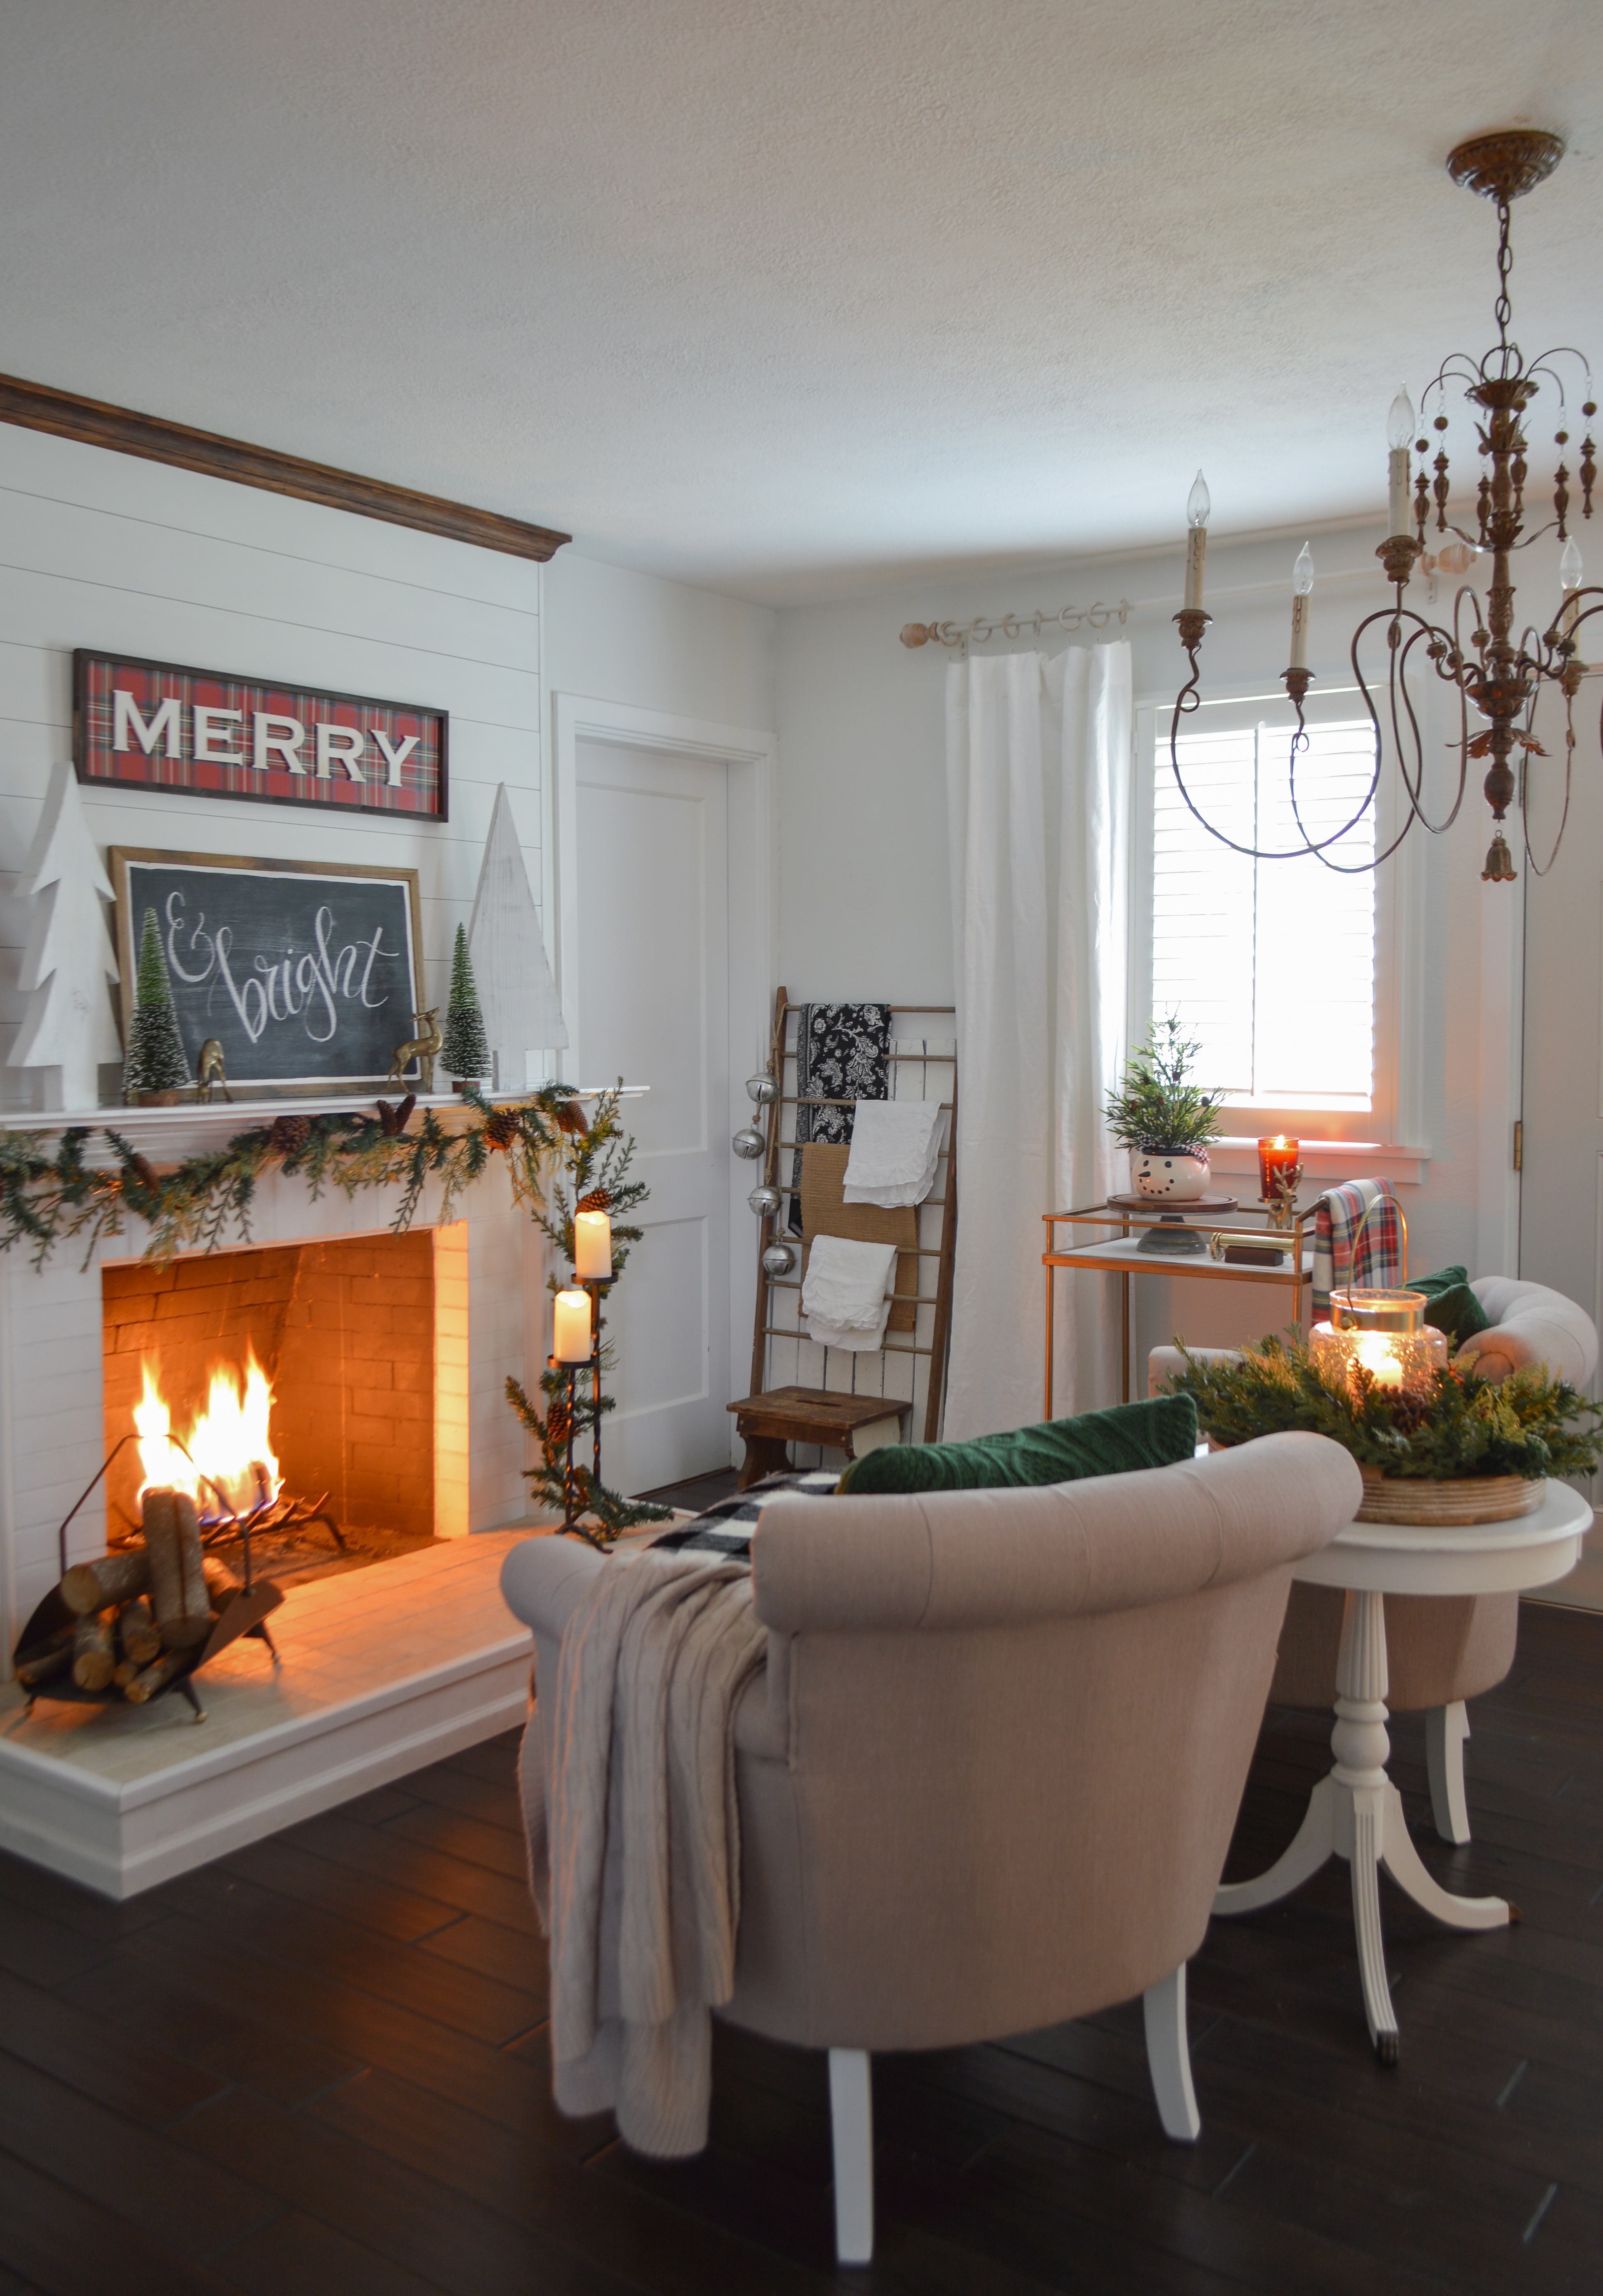 Holiday Housewalk Merry Christmas Home Tour - Cozy seating area, white shiplap fireplace, MERRY plaid and chalkboard signs, french country chandelier. #holidayhousewalk #christmashometour #cozychristmas #cottagechristmas #farmhousechristmas